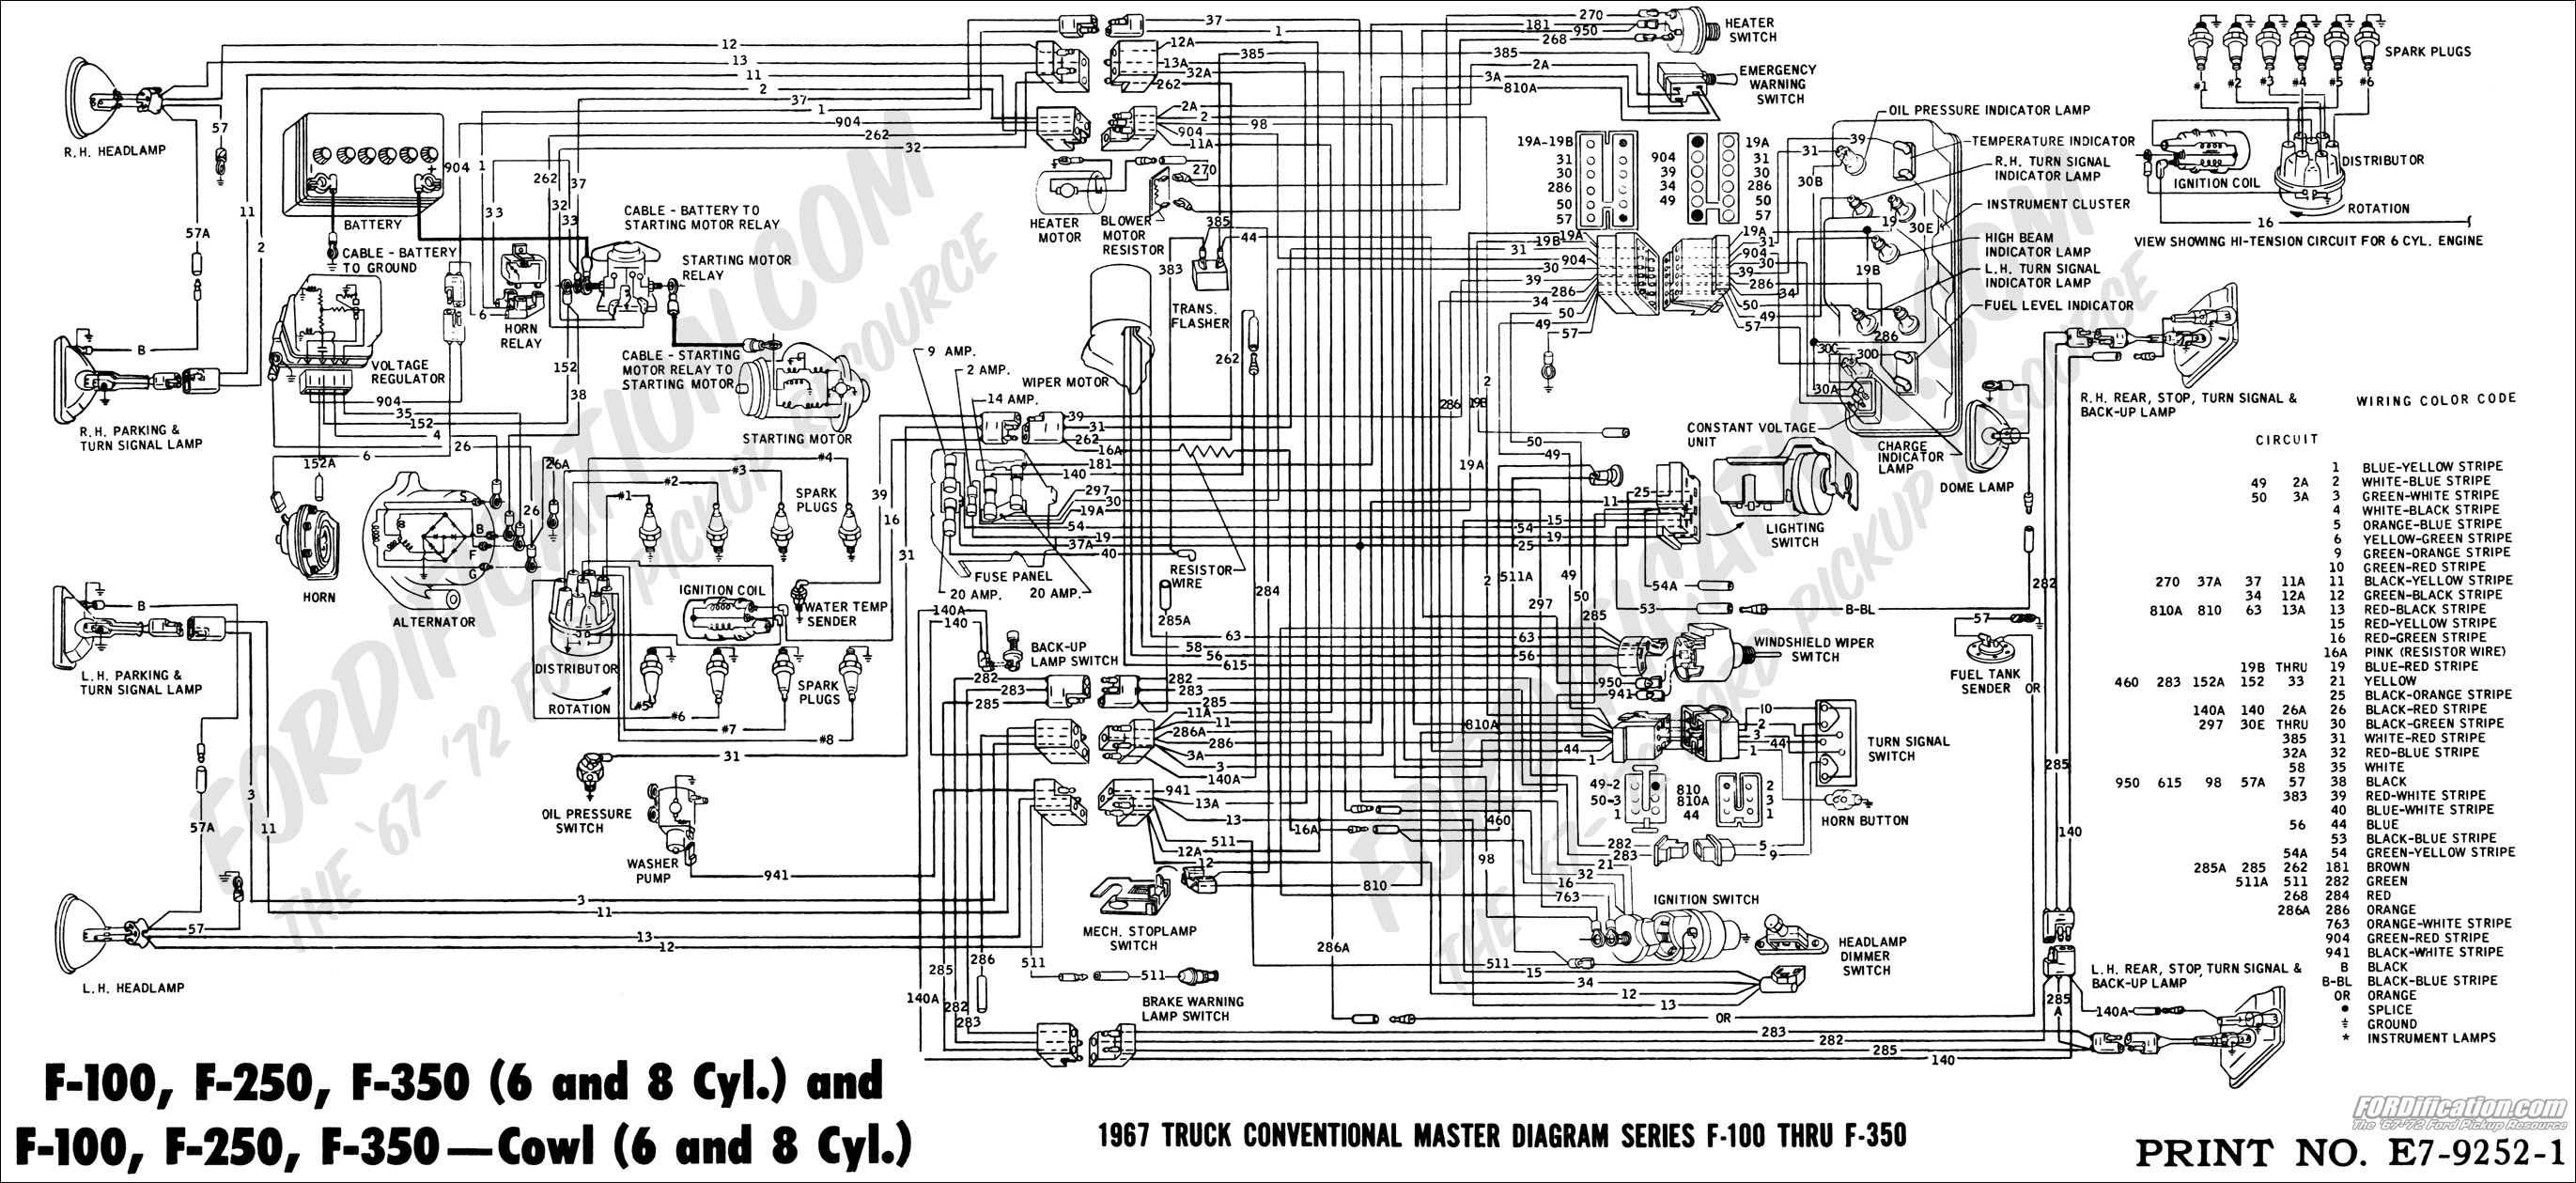 ford f 150 wiring schematic wiring diagrams wni Ford Electronic Ignition Wiring Diagram ford f 150 schematics wiring diagram forward 2006 ford f 150 electrical schematic ford f 150 wiring schematic